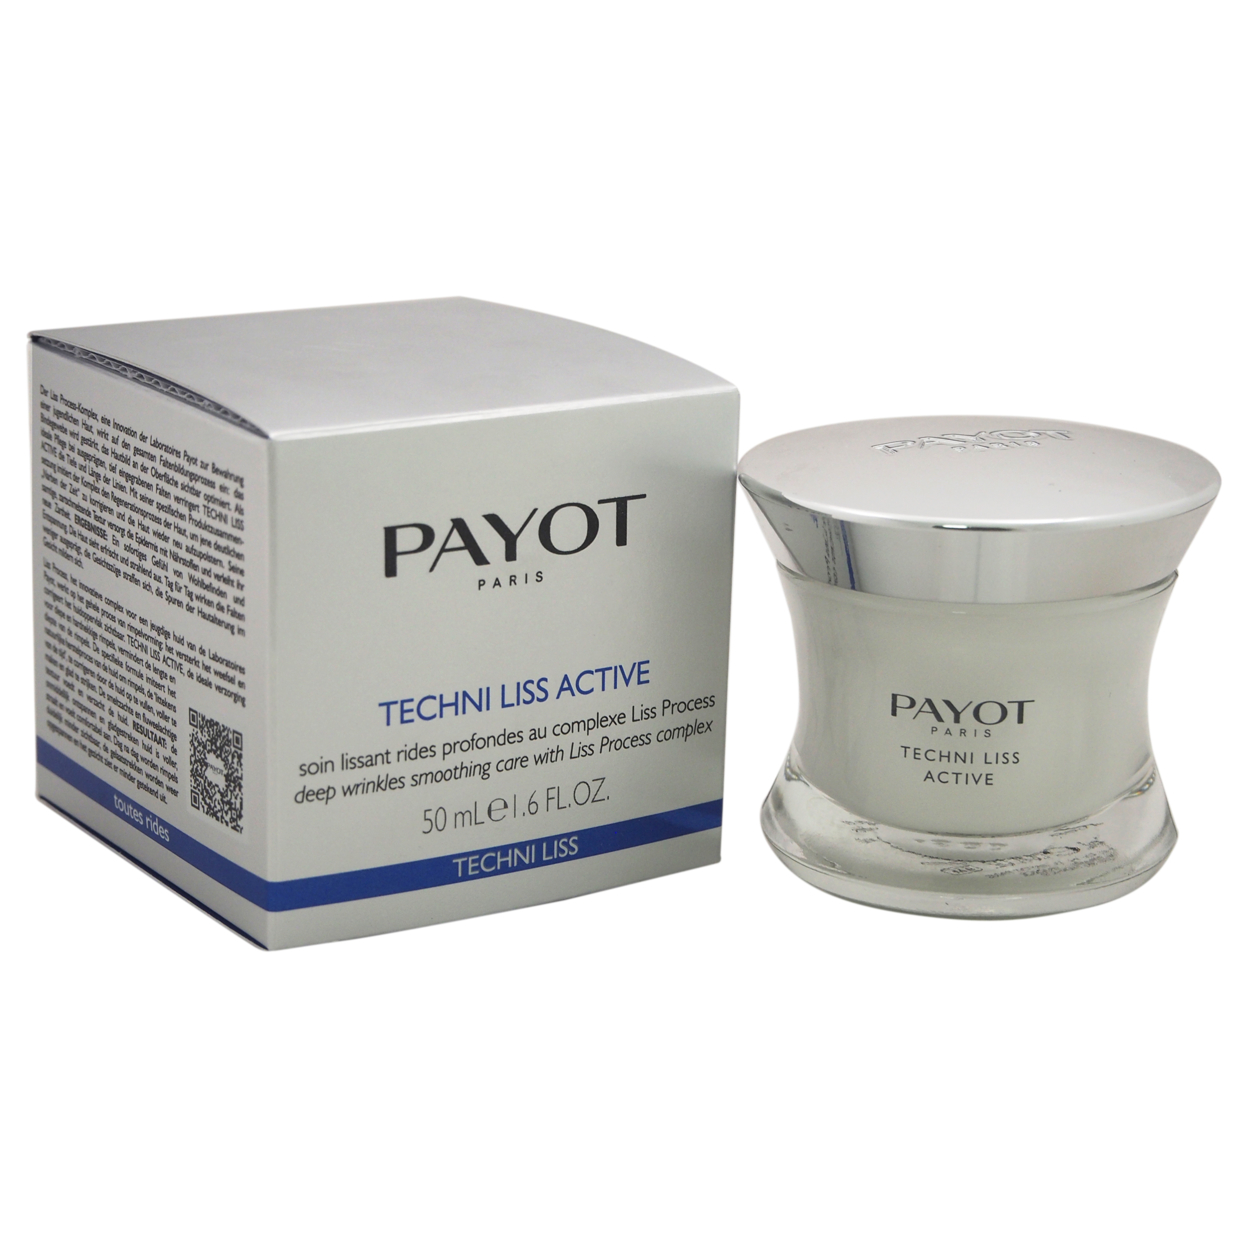 Techni Liss Active Deep Wrinkles Smoothing Care by Payot for Women - 1.6 oz Treatment payot techni liss